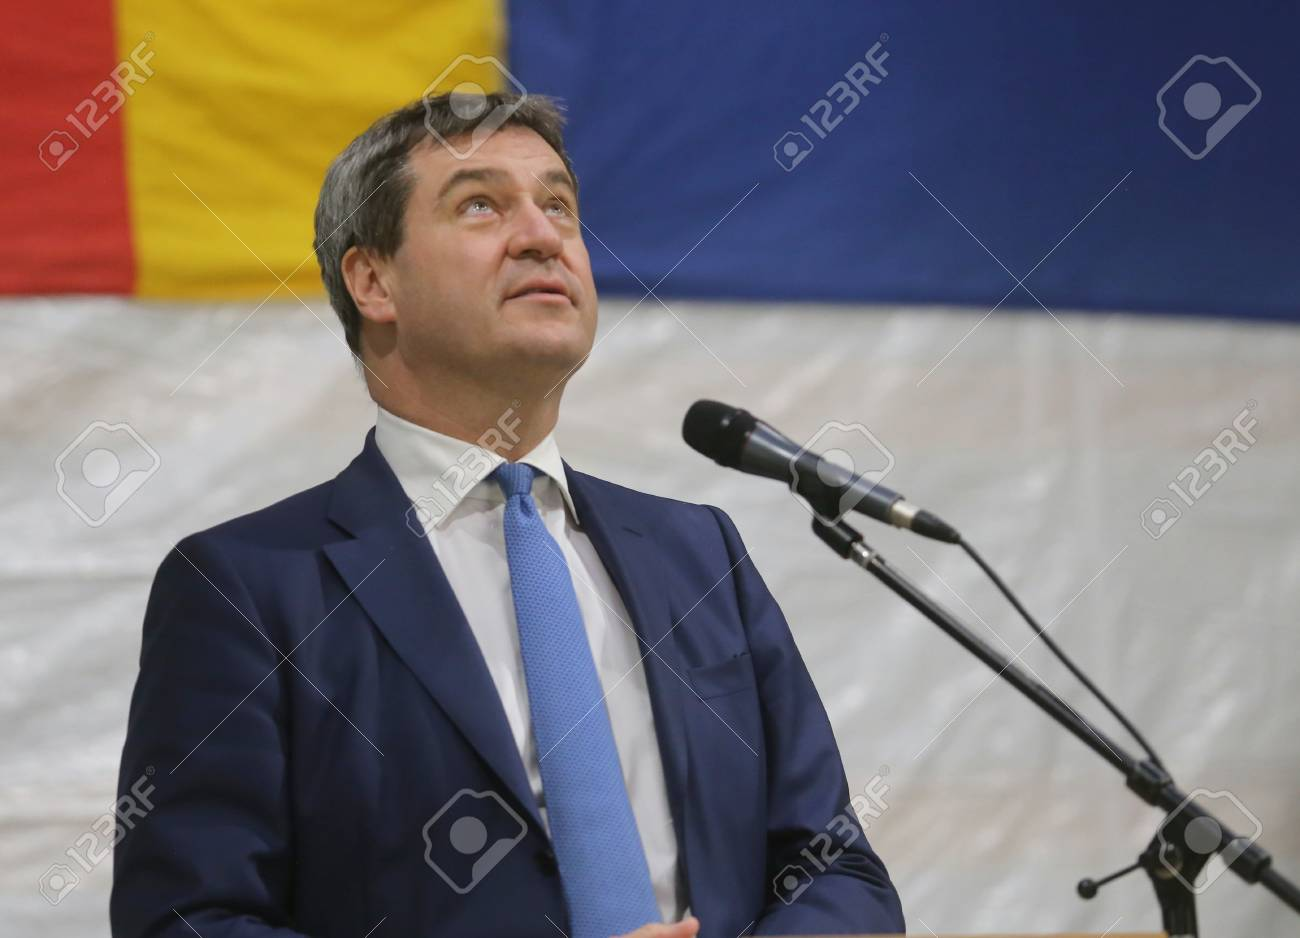 May 15, 2017 - Munich, Germany - Markus Soeder, CSU, Bavarian Minister of State for Finance, for Country Development and Home at a topping-out ceremony of a government building Standard-Bild - 86160246